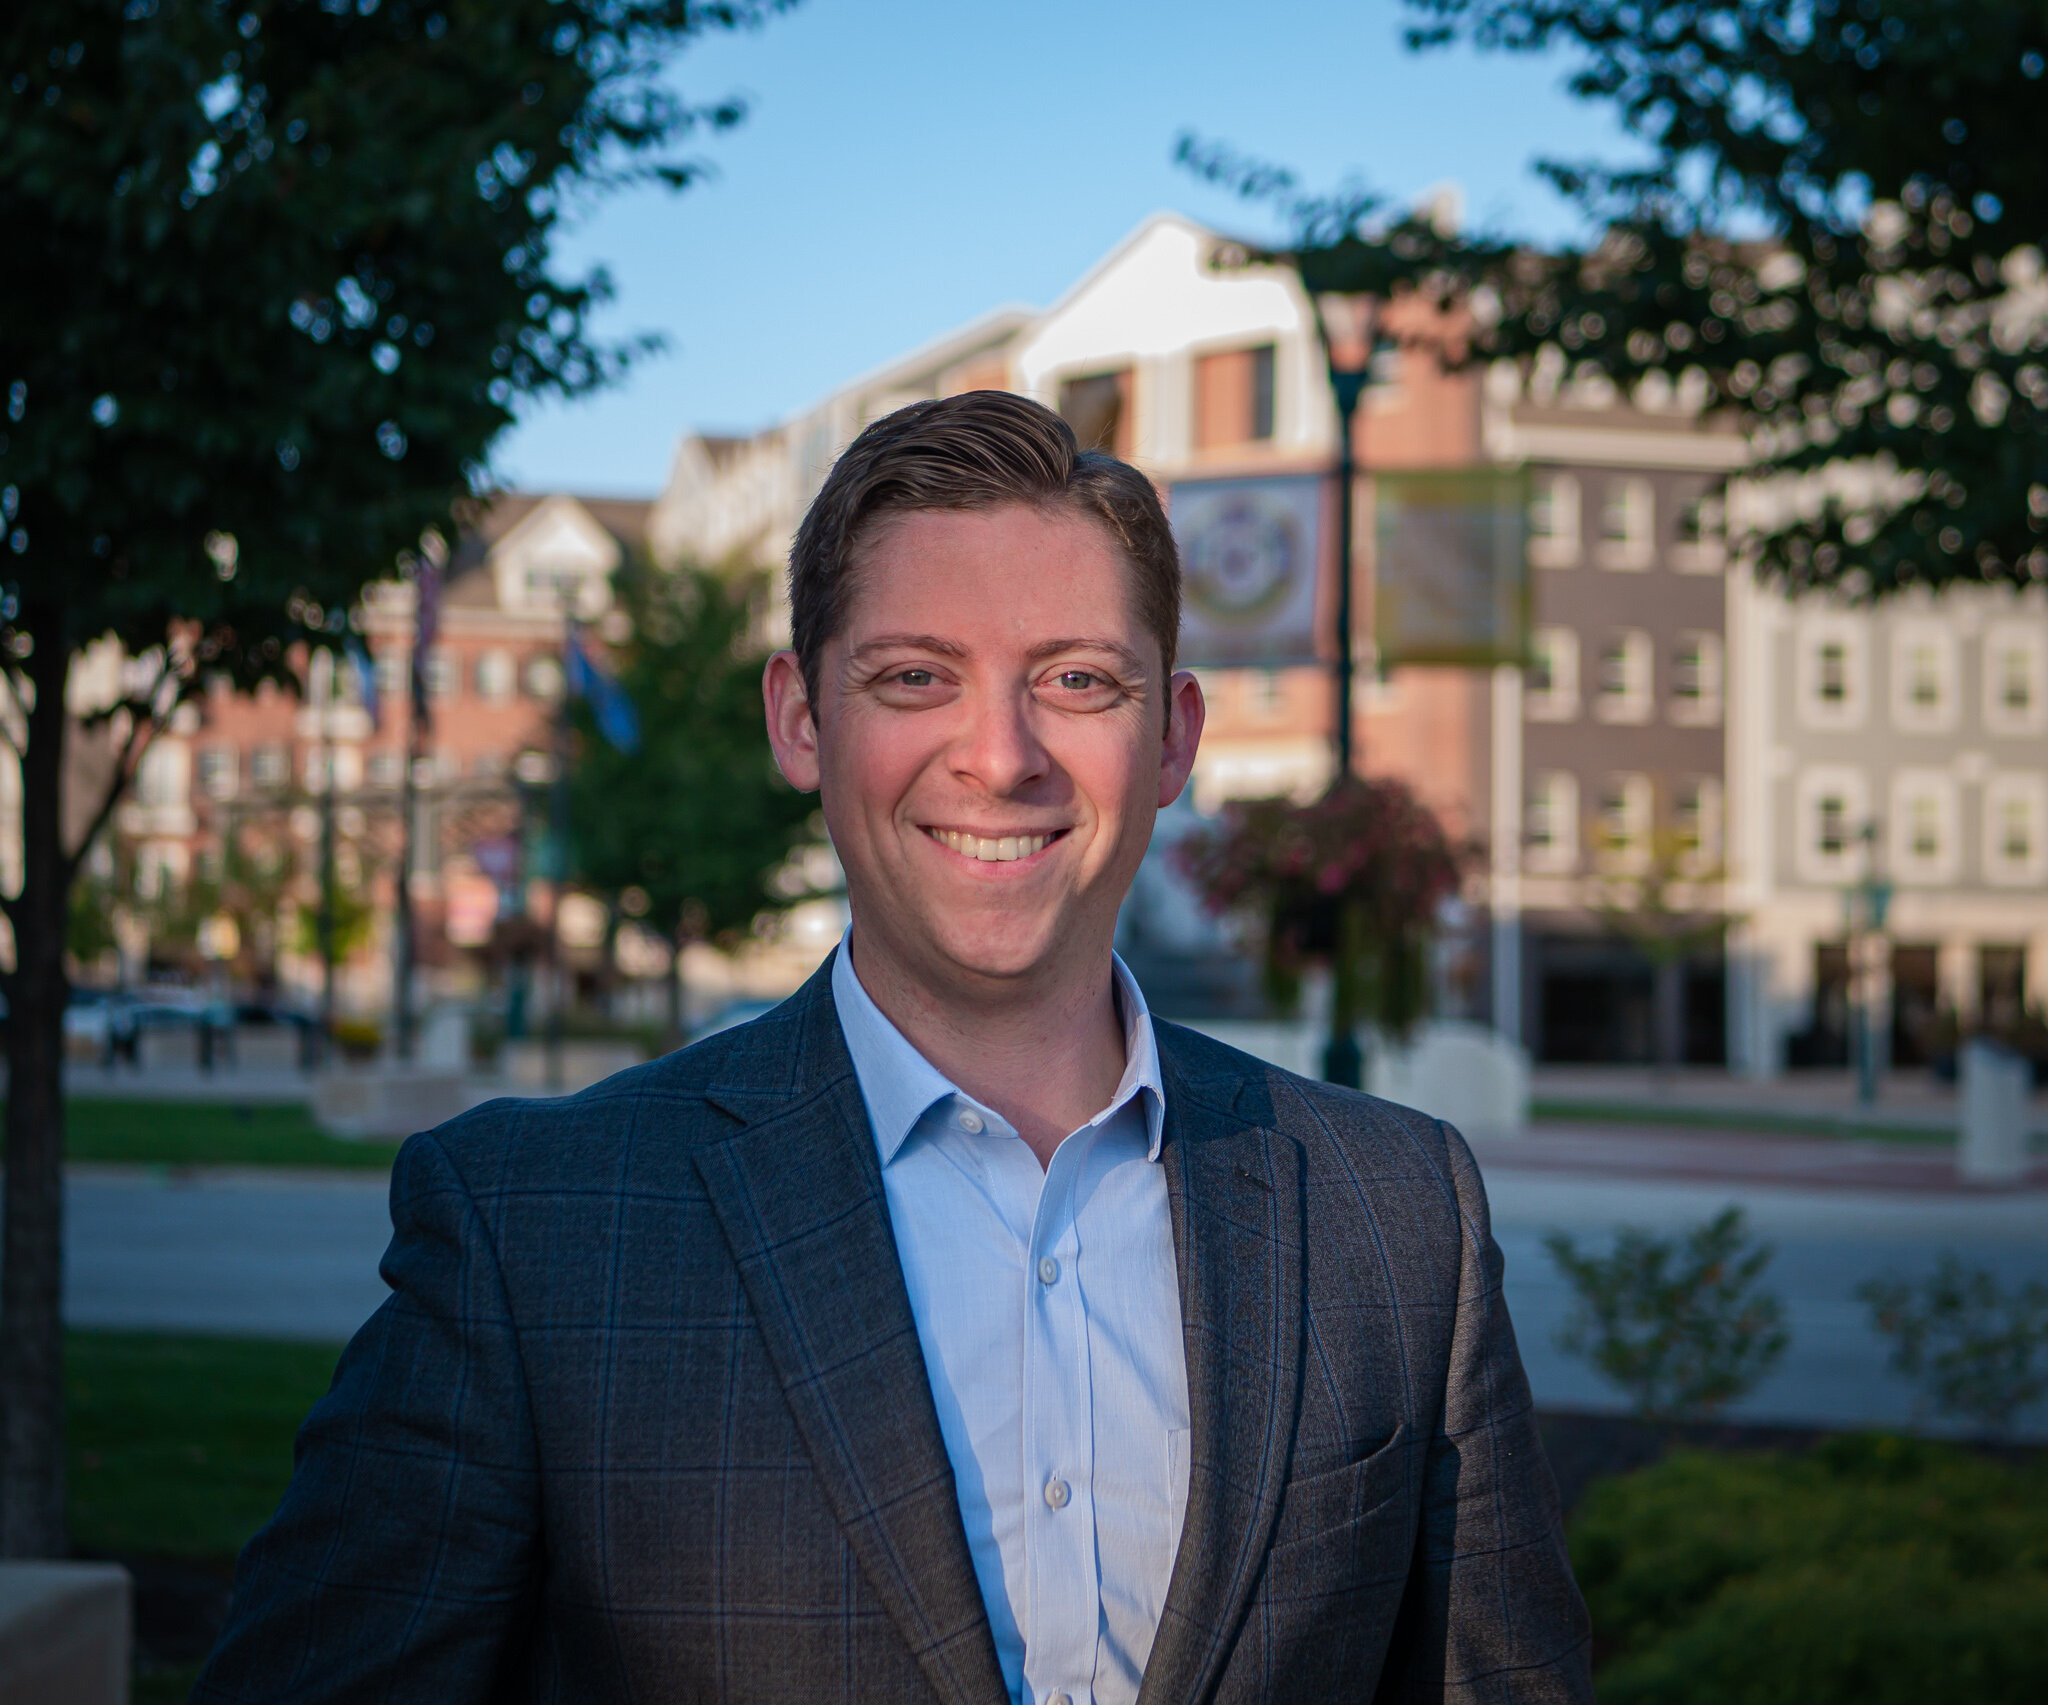 About Adam Kaps - As our vibrant city continues to grow, we will face new problems that will require collaboration and new thinking. These problems will challenge our infrastructure systems, economic outlook, and quality of life. It's time for a leader who understands what it means to serve and work with our community to move our city forward.Learn More